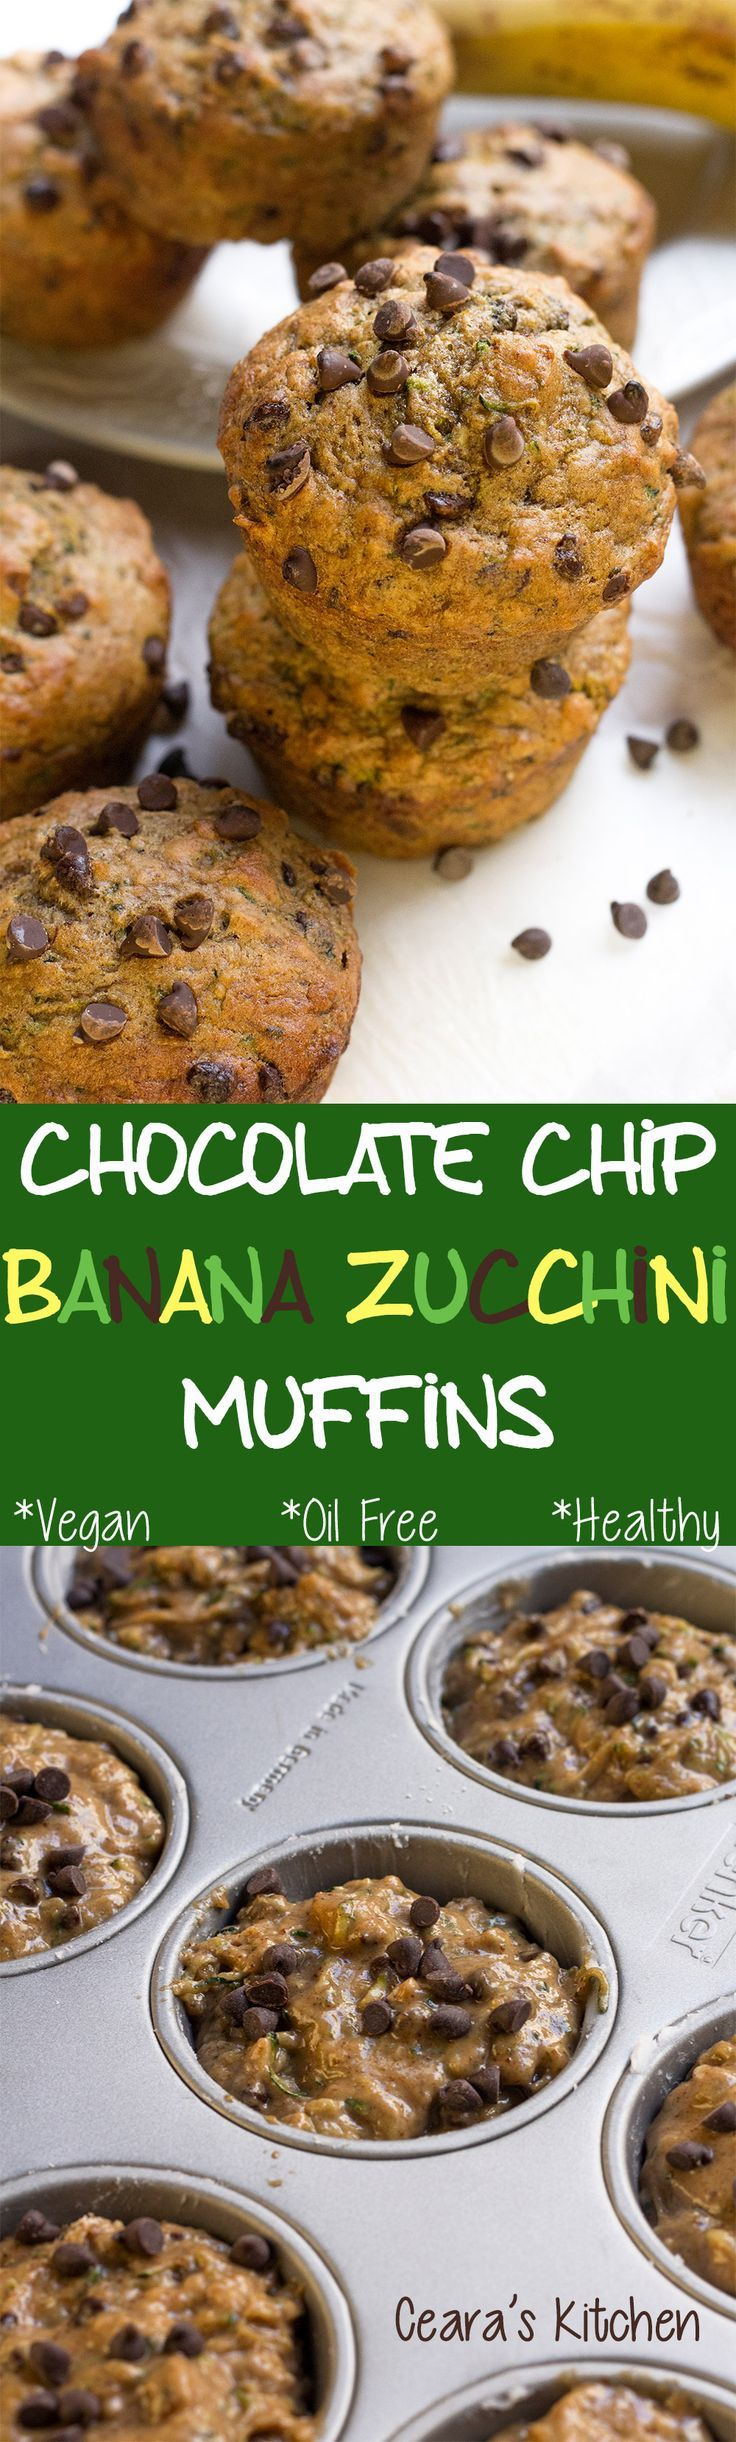 Chocolate Chip Banana Zucchini Muffins - moist, sweet and soft from the finely shredded zucchini + sweet banana! #Healthy